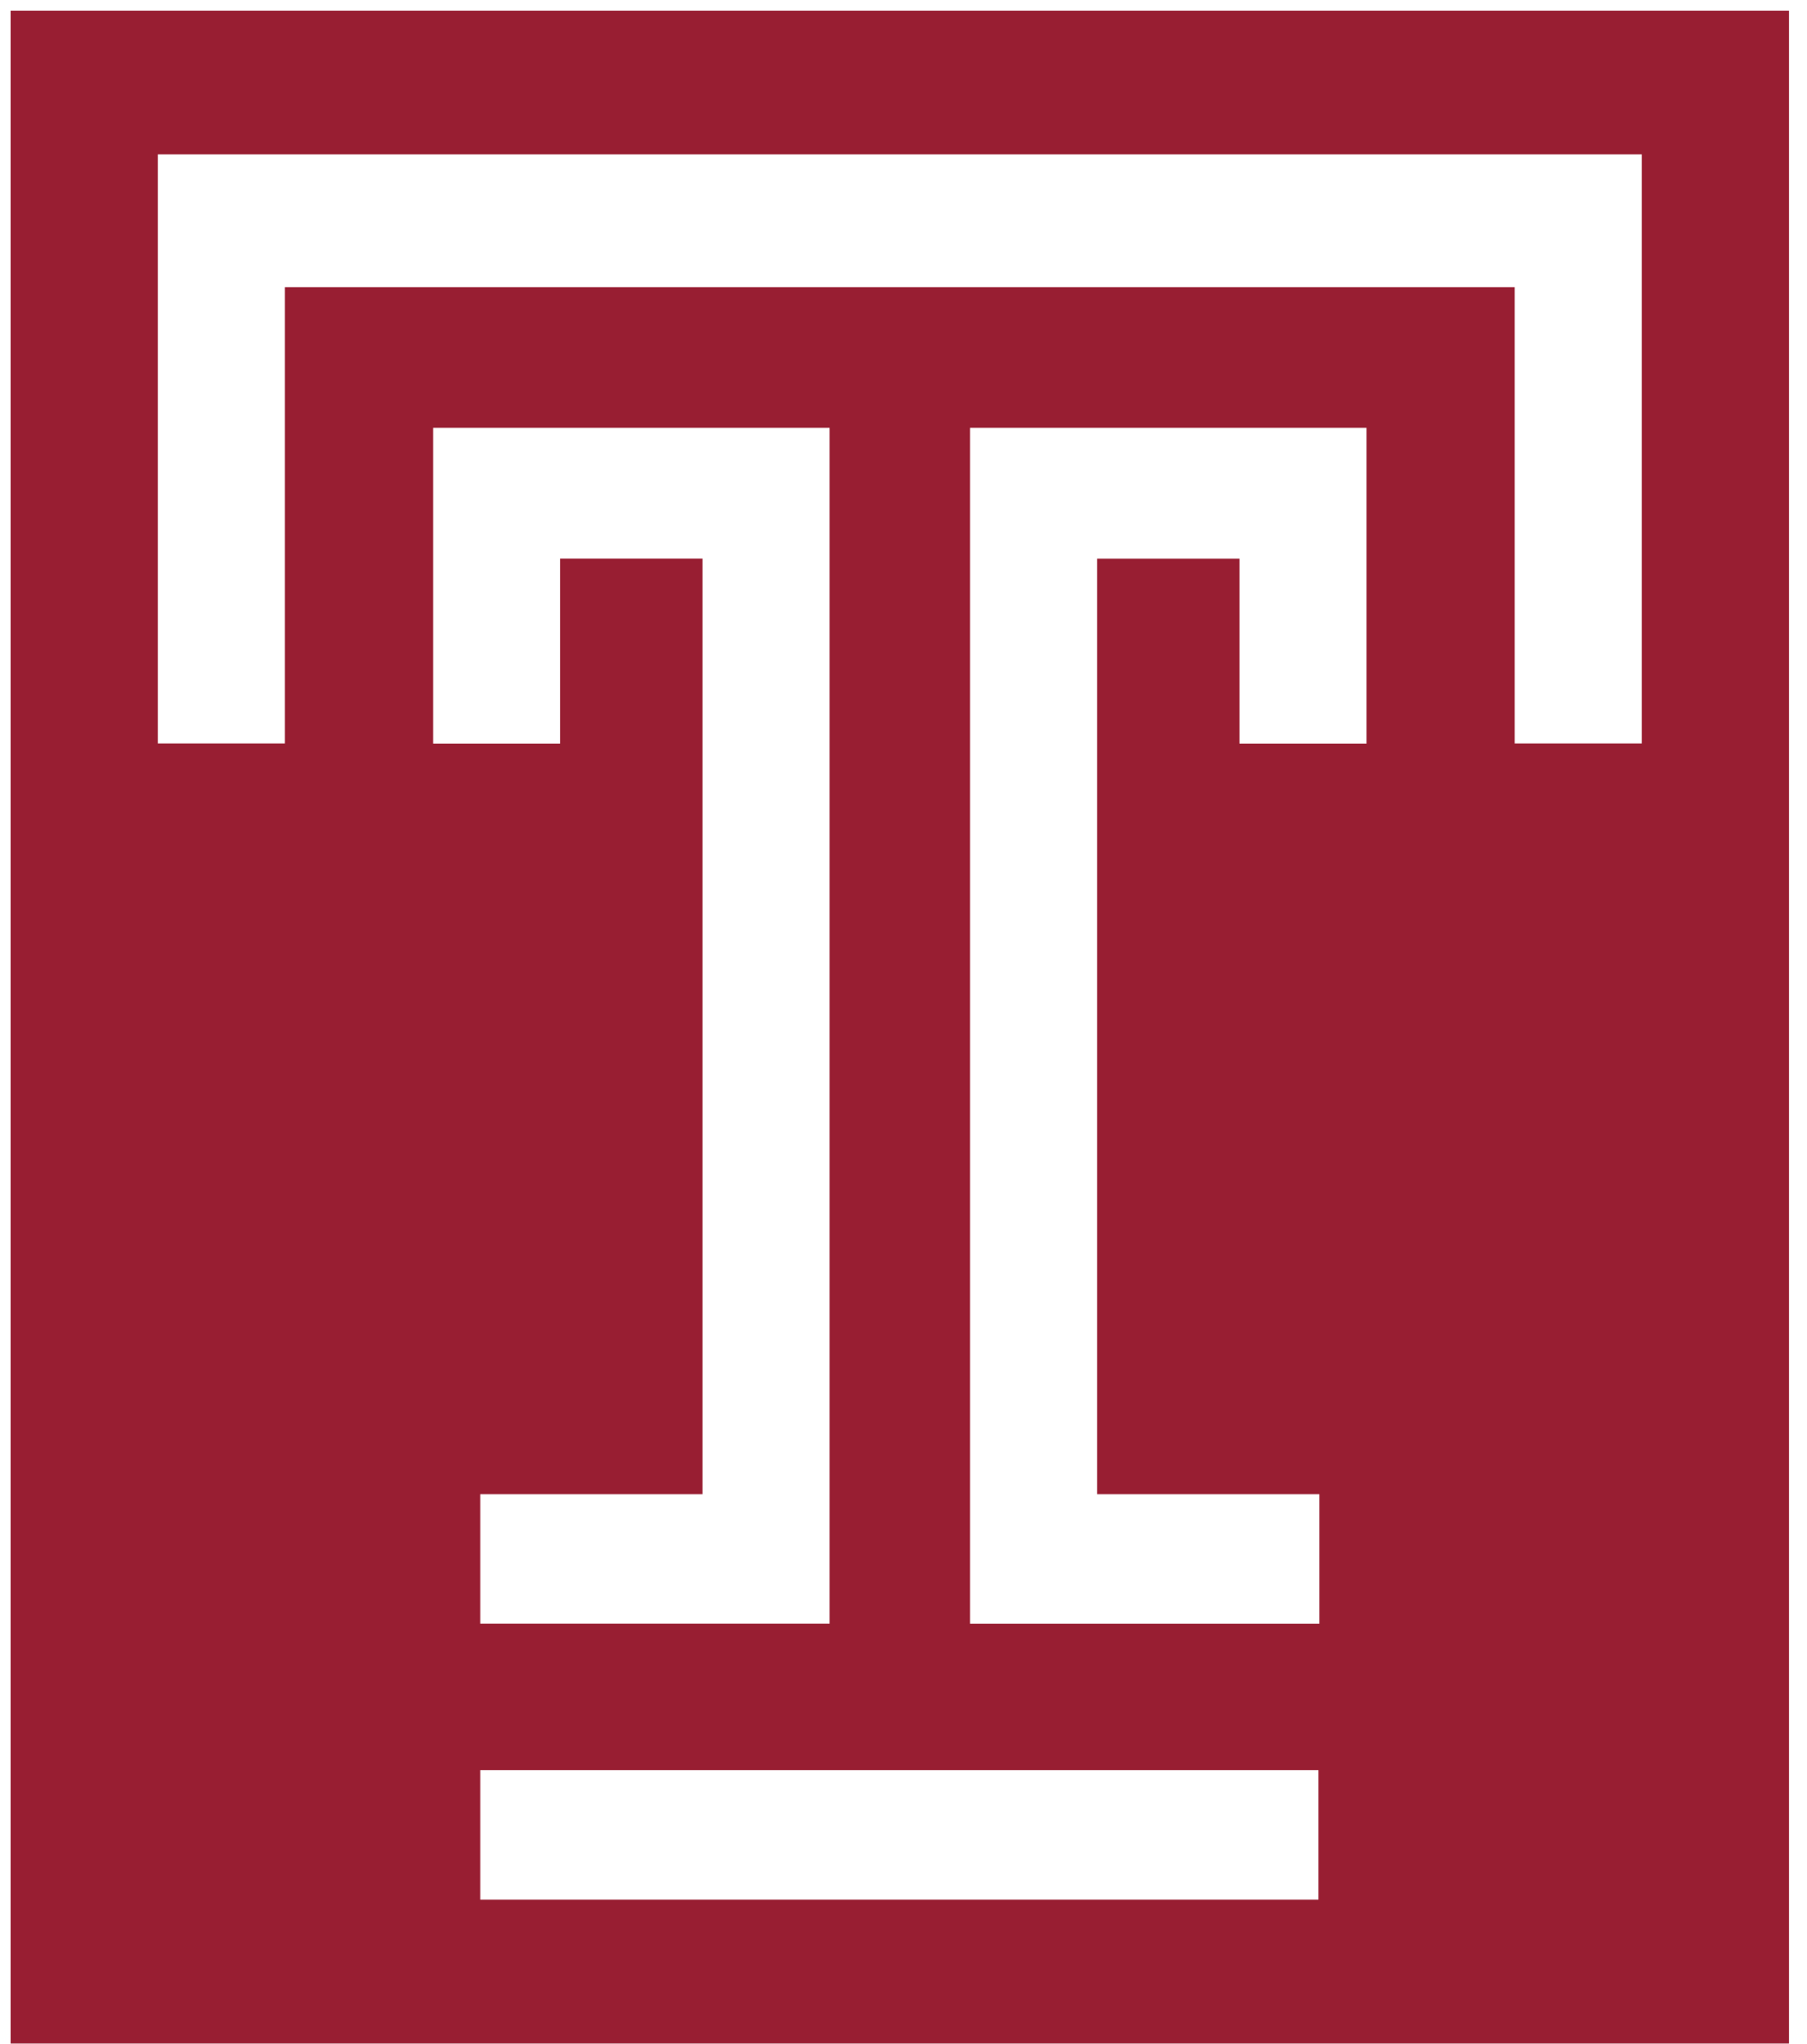 2000x2262 Temple Owls Football